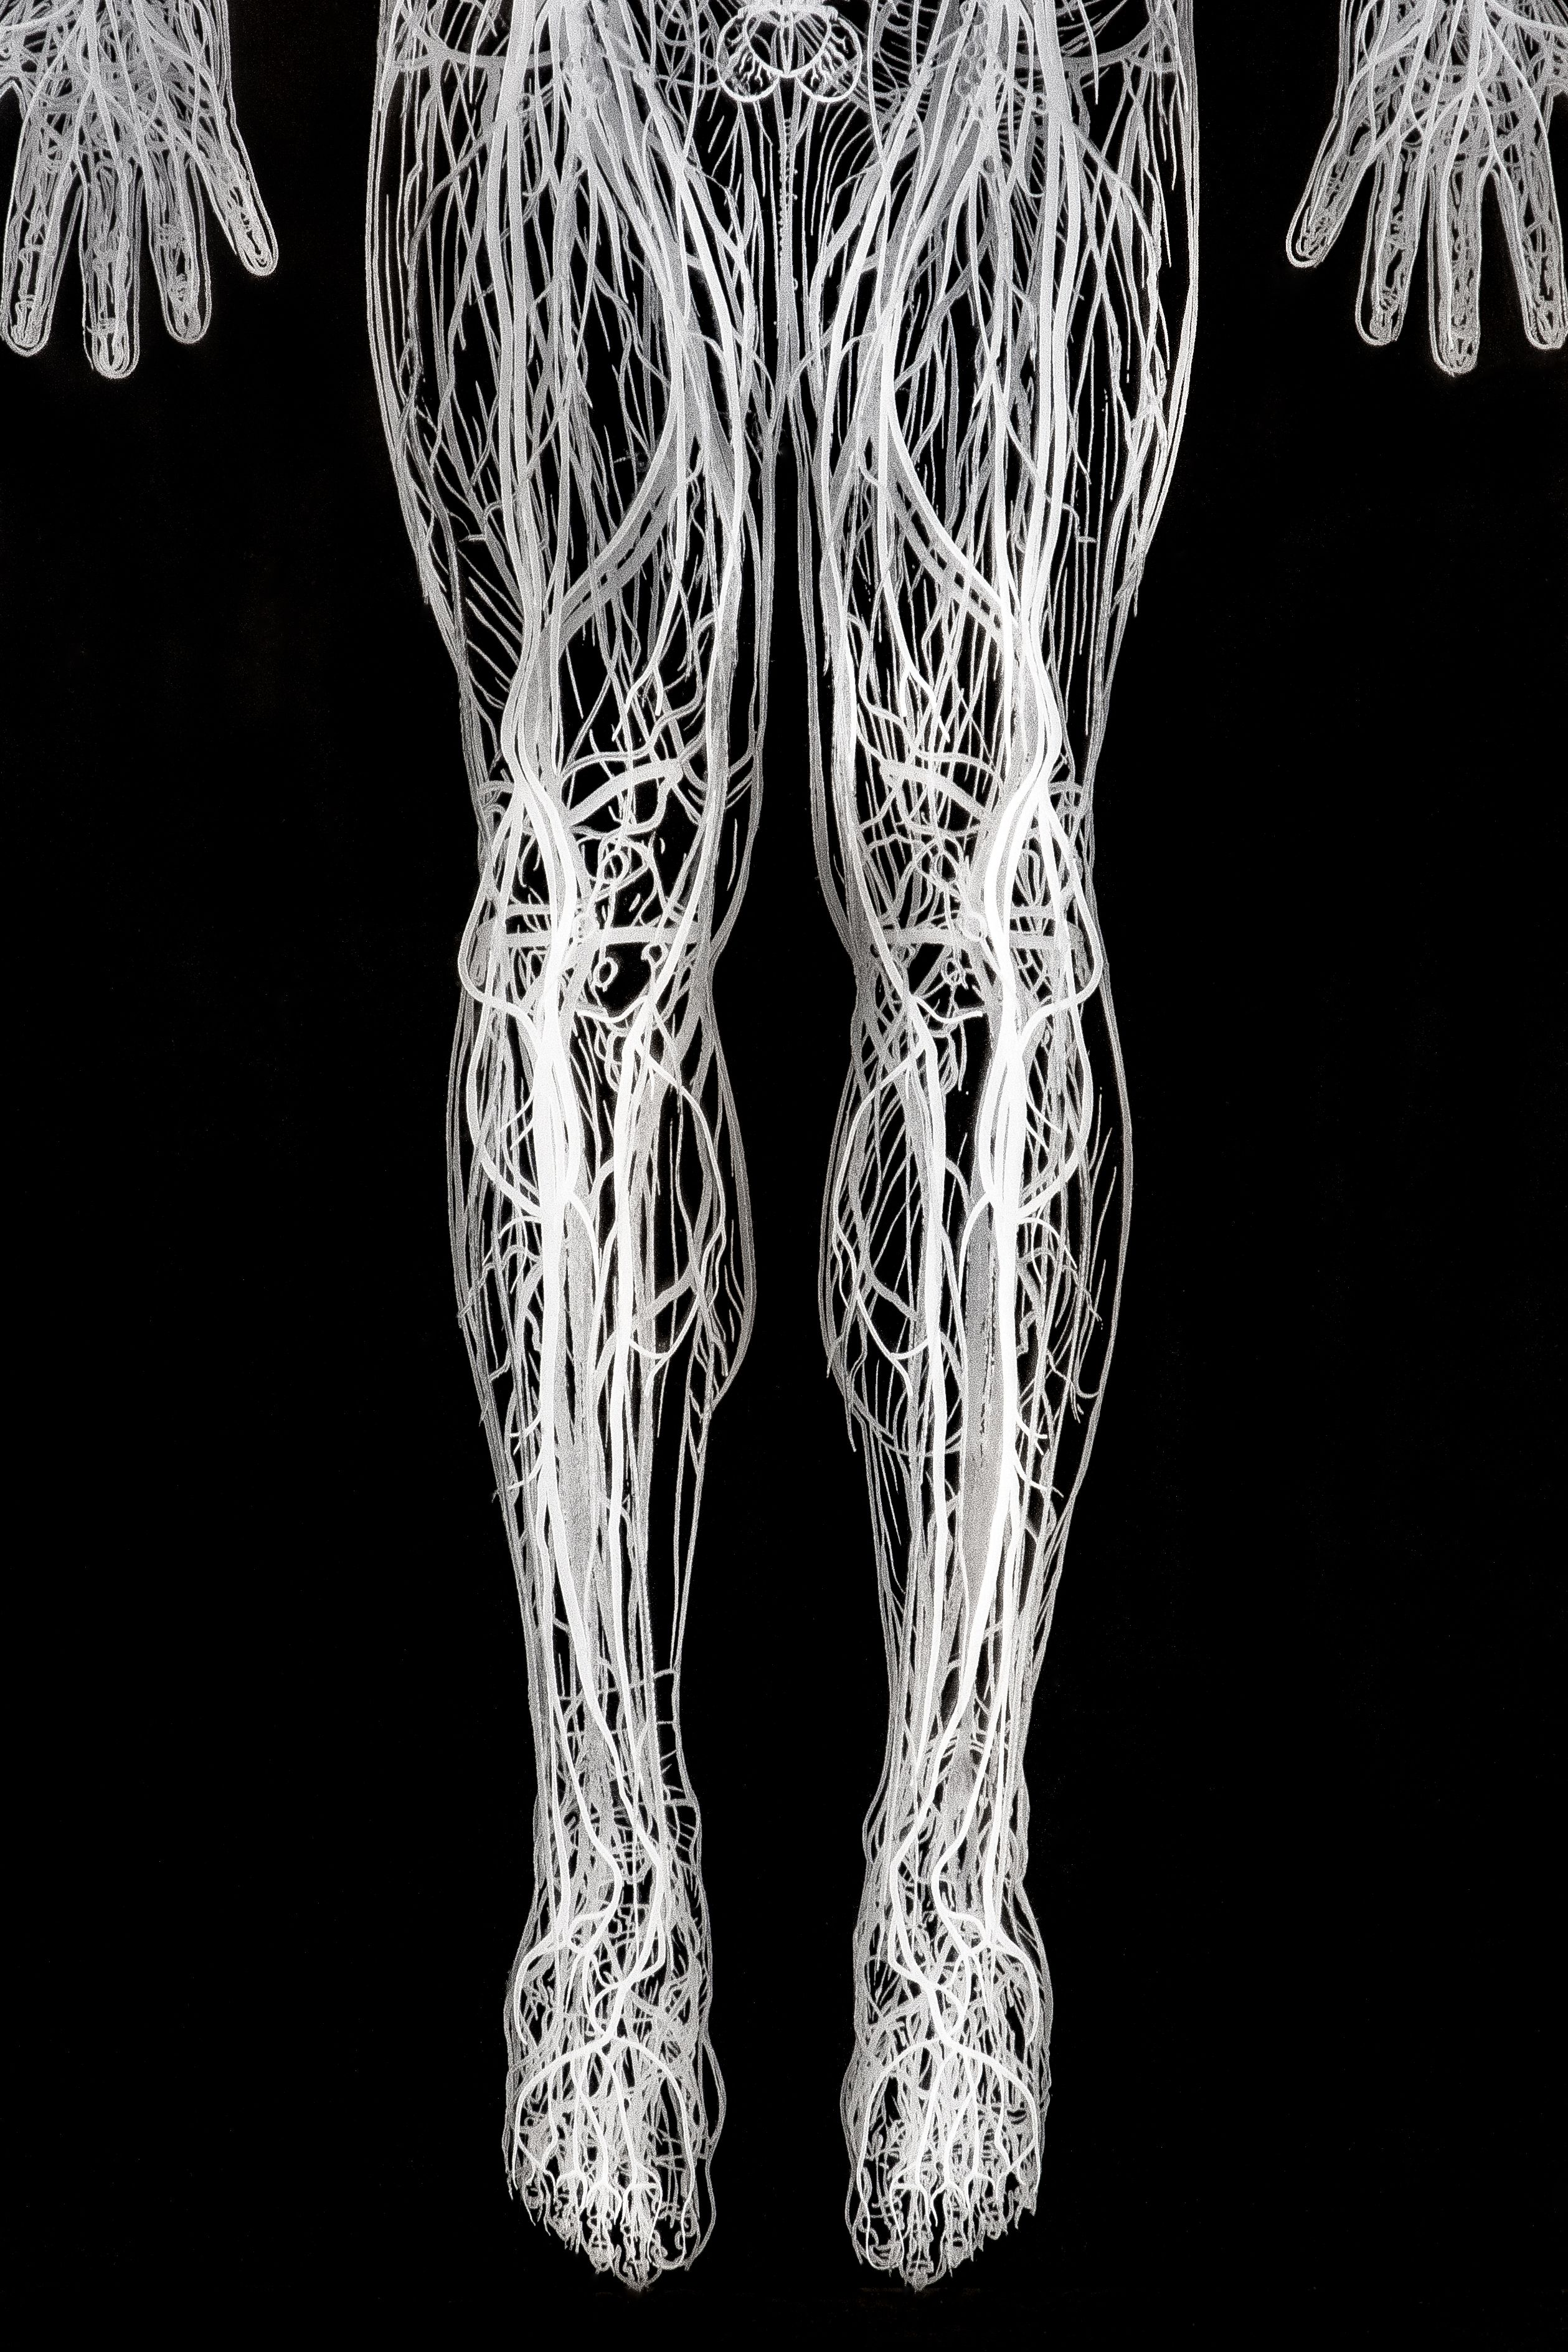 A set of 11 laser engraved movable plexiglasses illustrating the human body systems